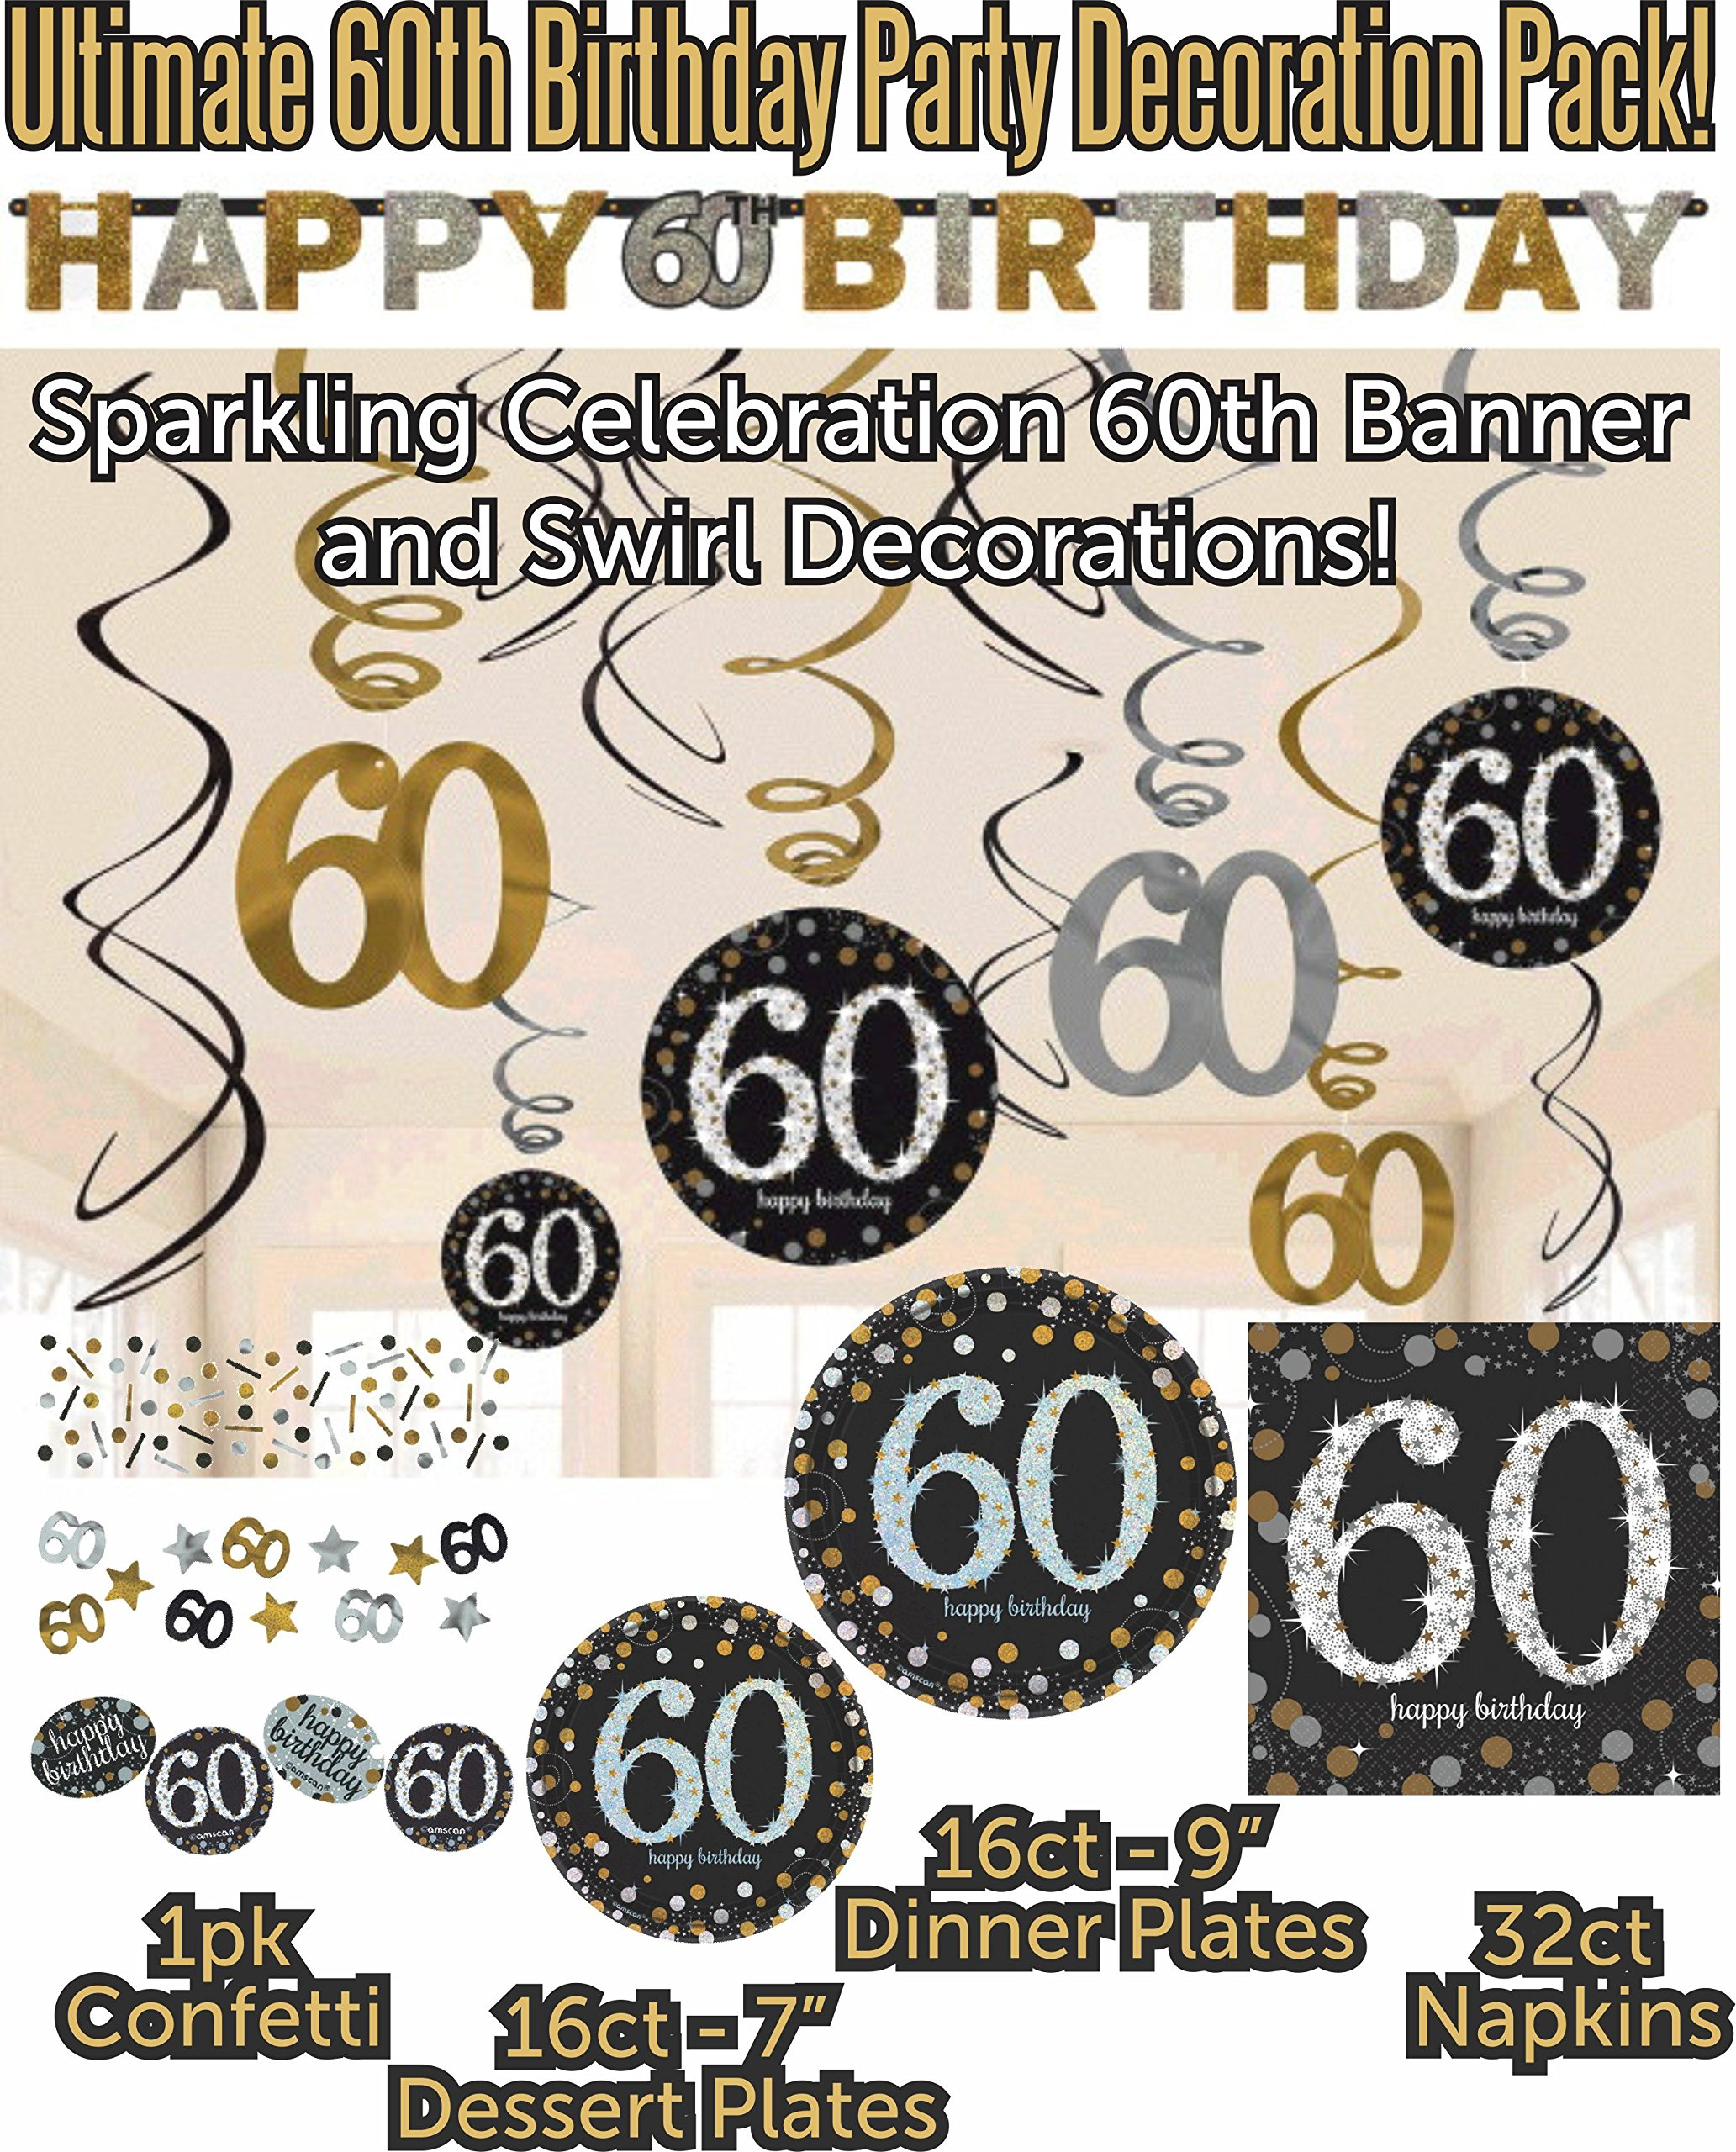 Ultimate 60th Birthday Party Decoration Supply Bundle Pack with 16 Dinner Plates, 16 Dessert Plates, 32 Luncheon Napkins, Hanging Swirls, 60th Banner and Confetti (Bonus Matching Party Straws)